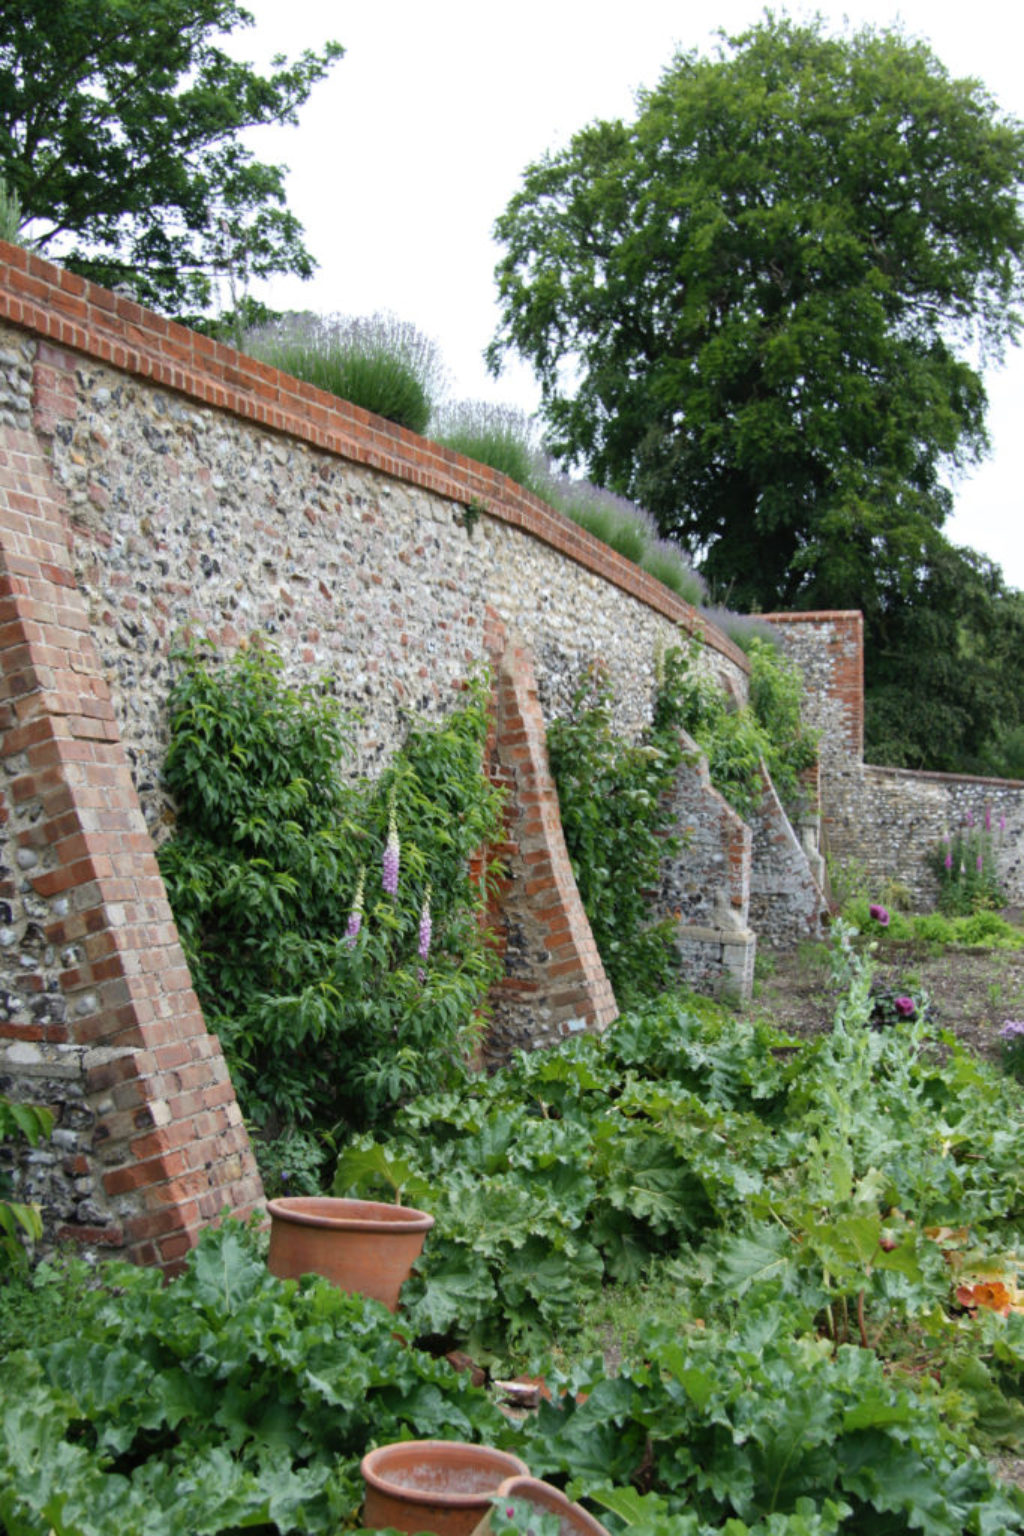 Piers For Strength On Old Garden Wall